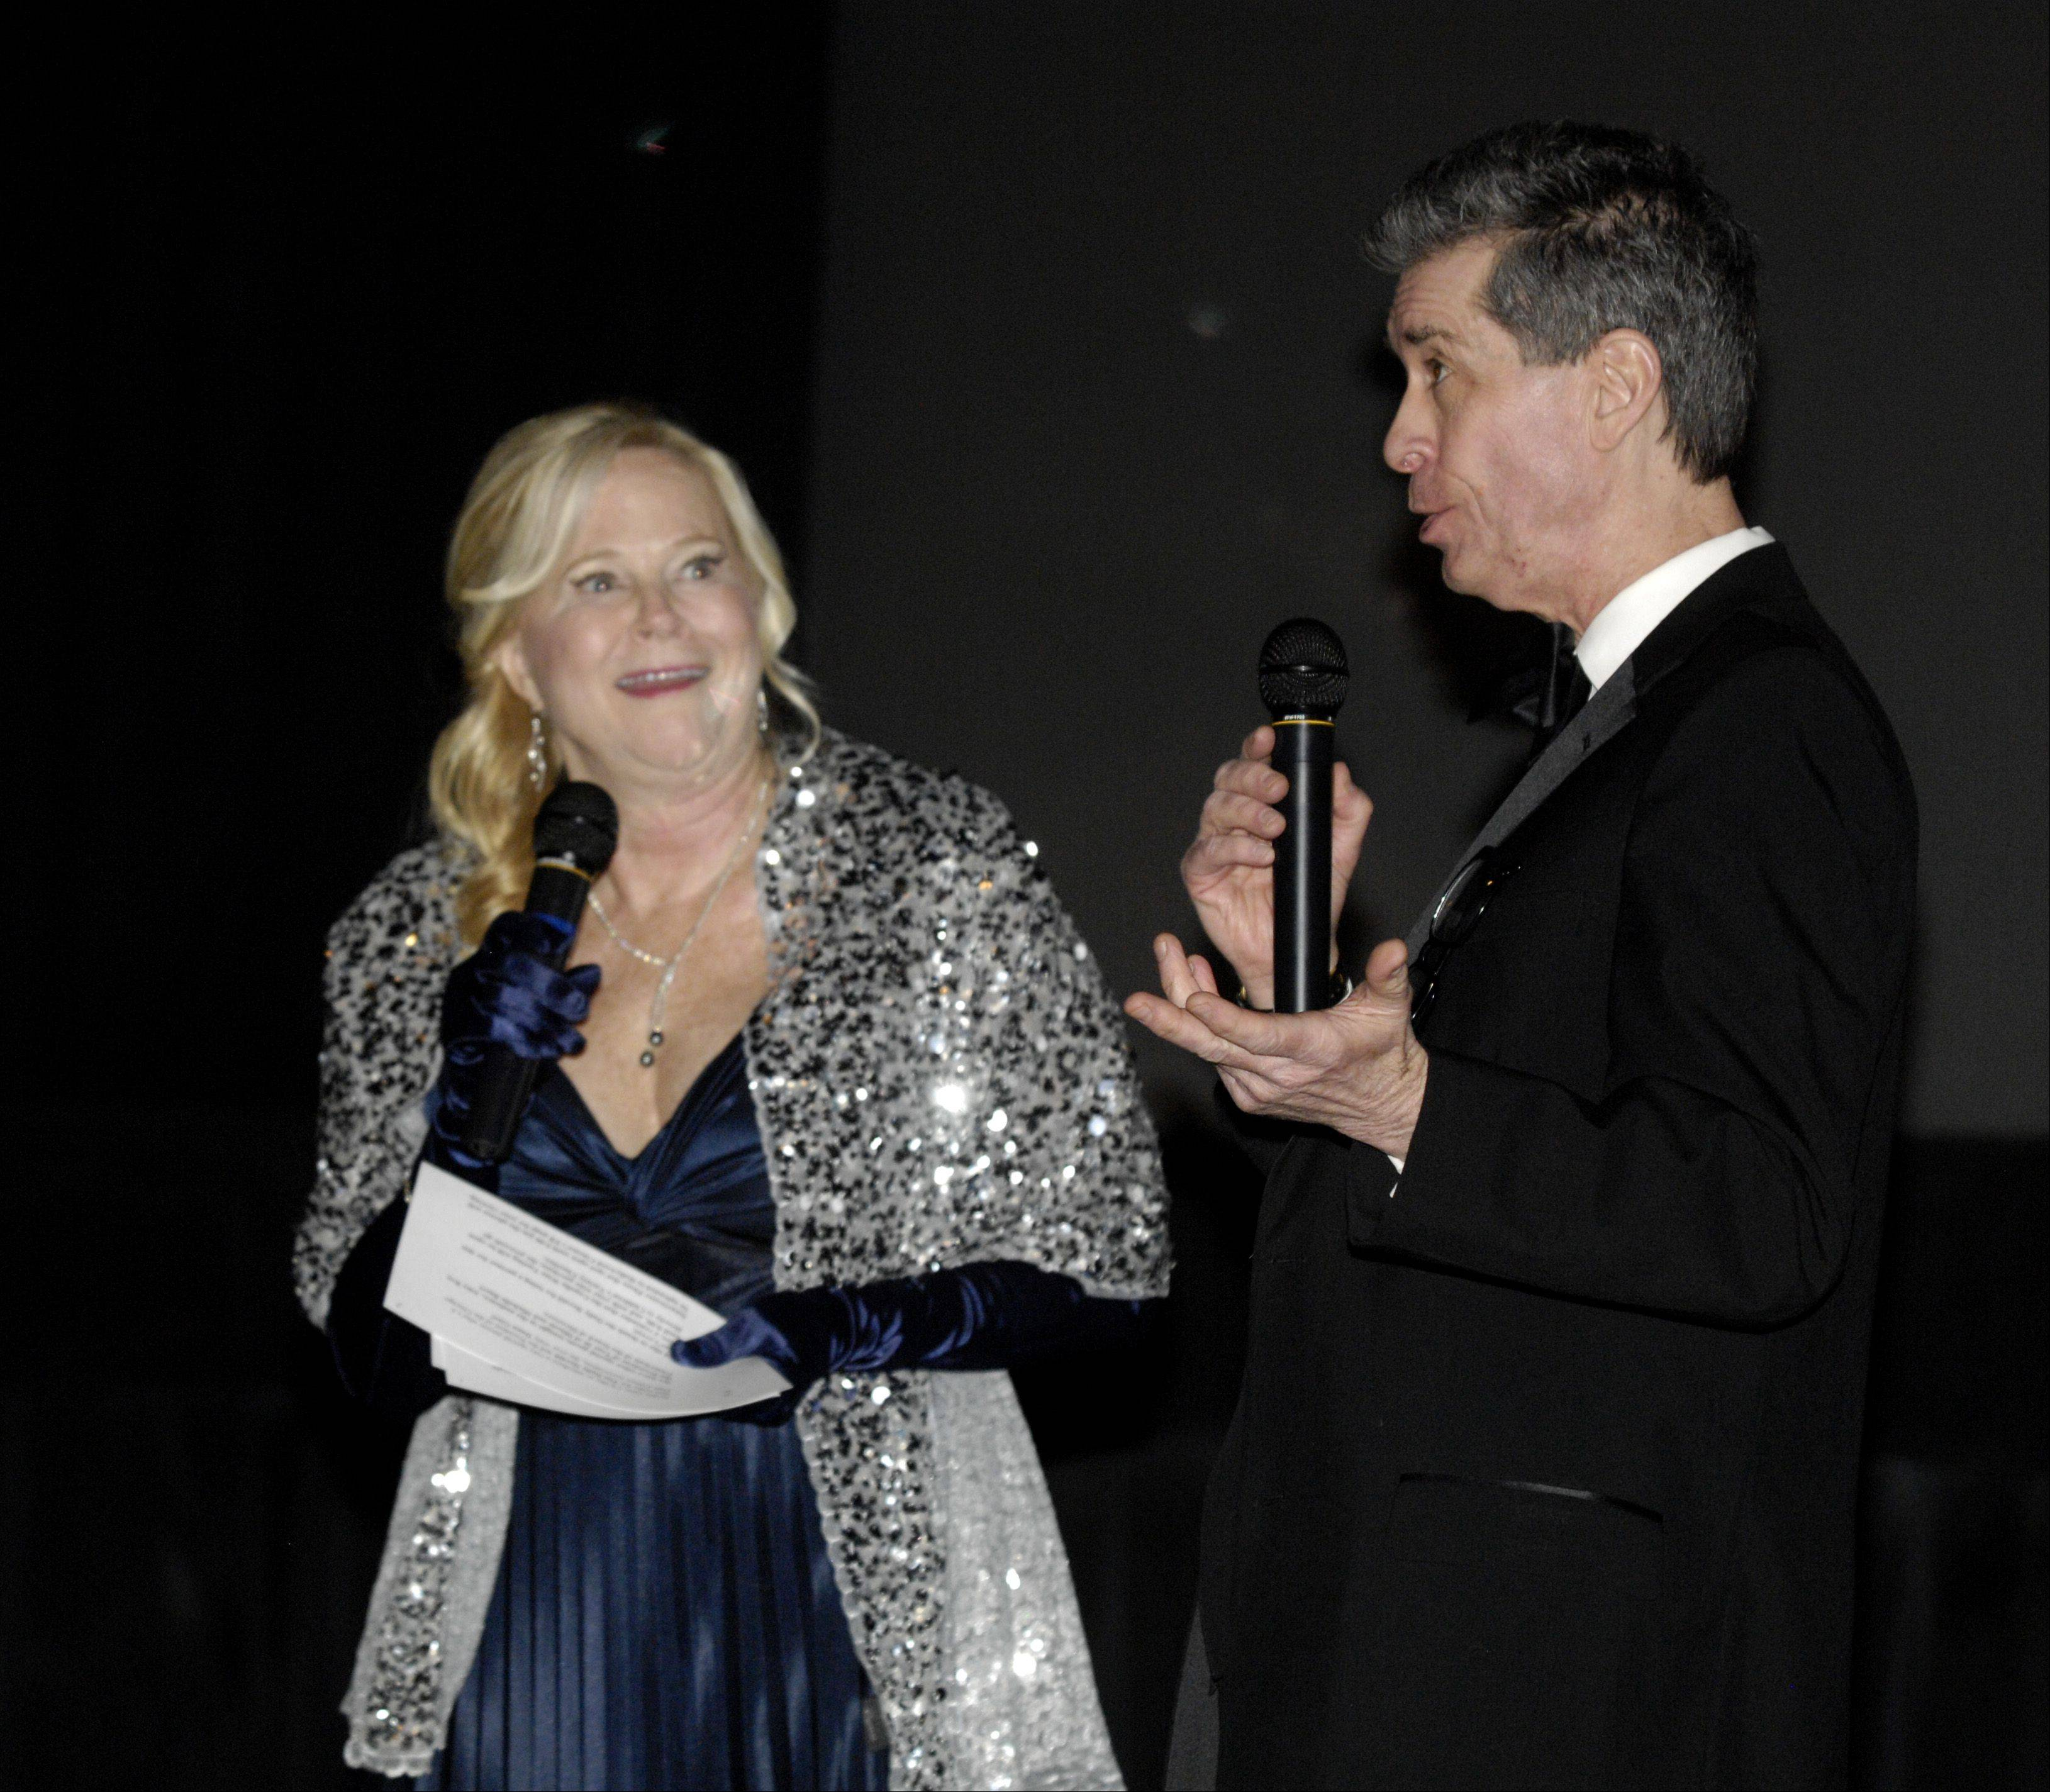 Daily Herald Film Critic Dann Gire and Hollywood 360 Radio Network film critic Sarah Adamson host an Academy Awards event at the Hollywood Palms Cinema in Naperville Sunday.